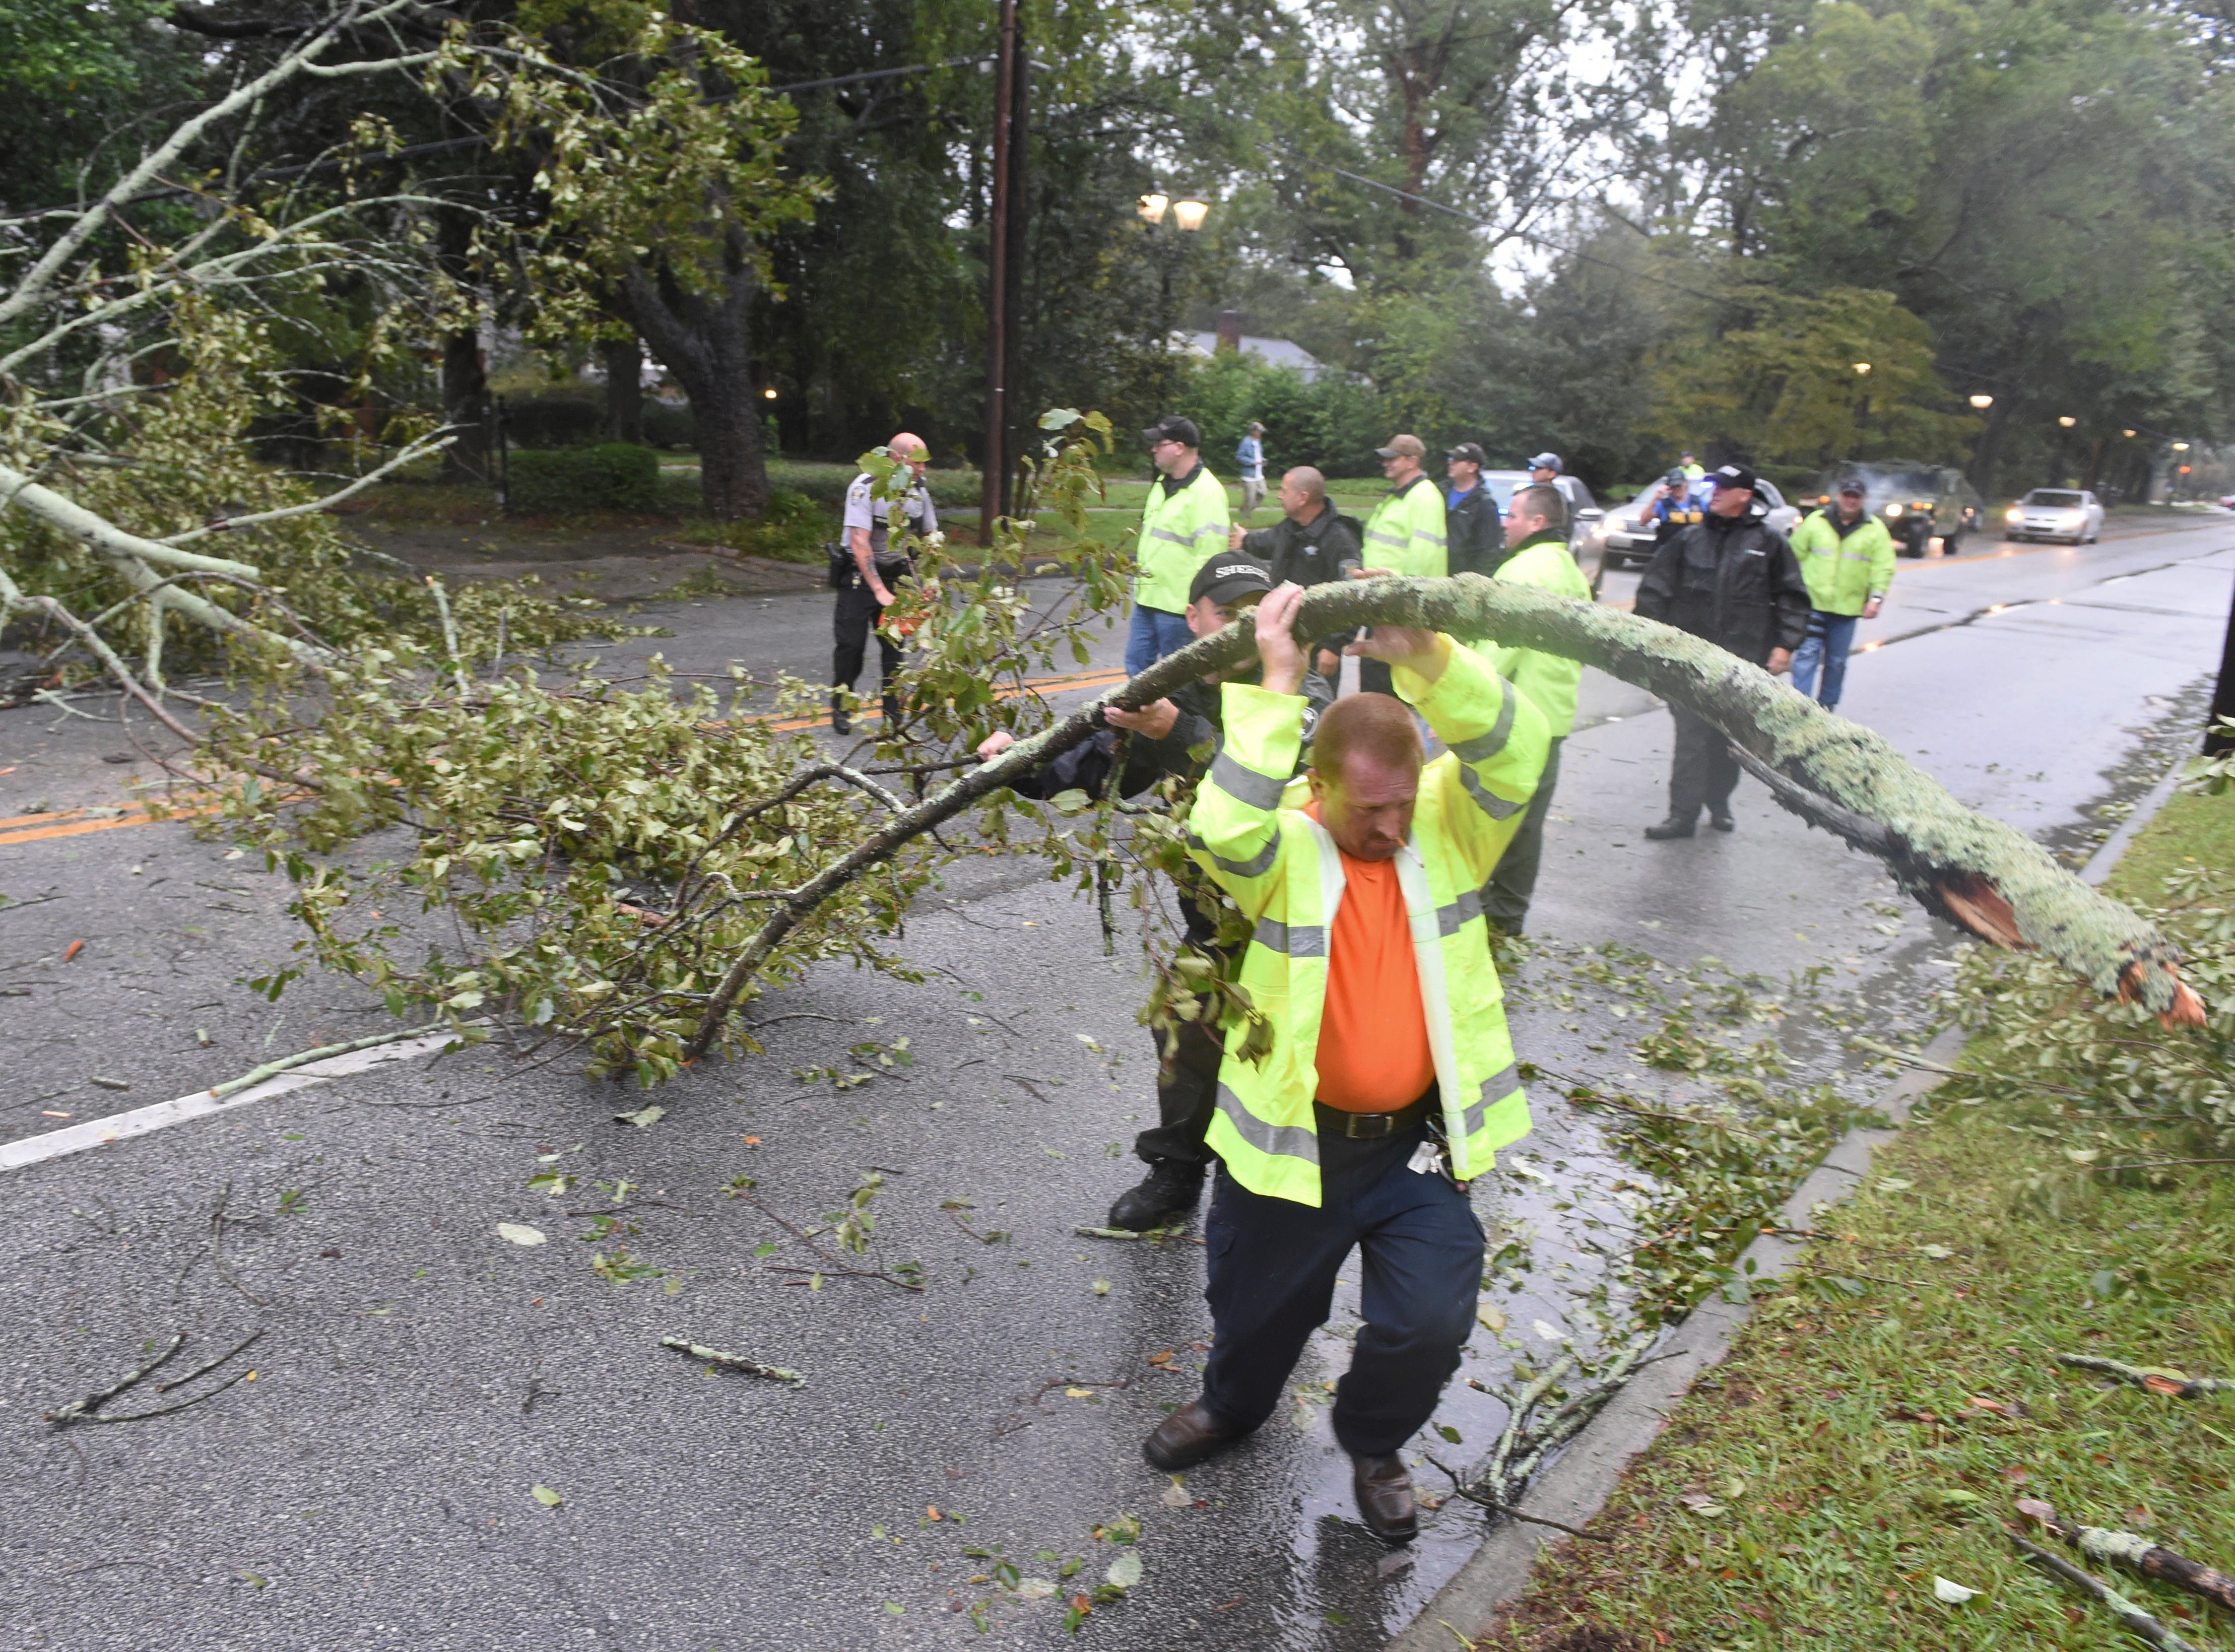 A crew works to remove a tree blocking Walton Way in Augusta, Ga. Thursday, Oct. 11, 2018, after it was blown down by tropical Storm Michael.